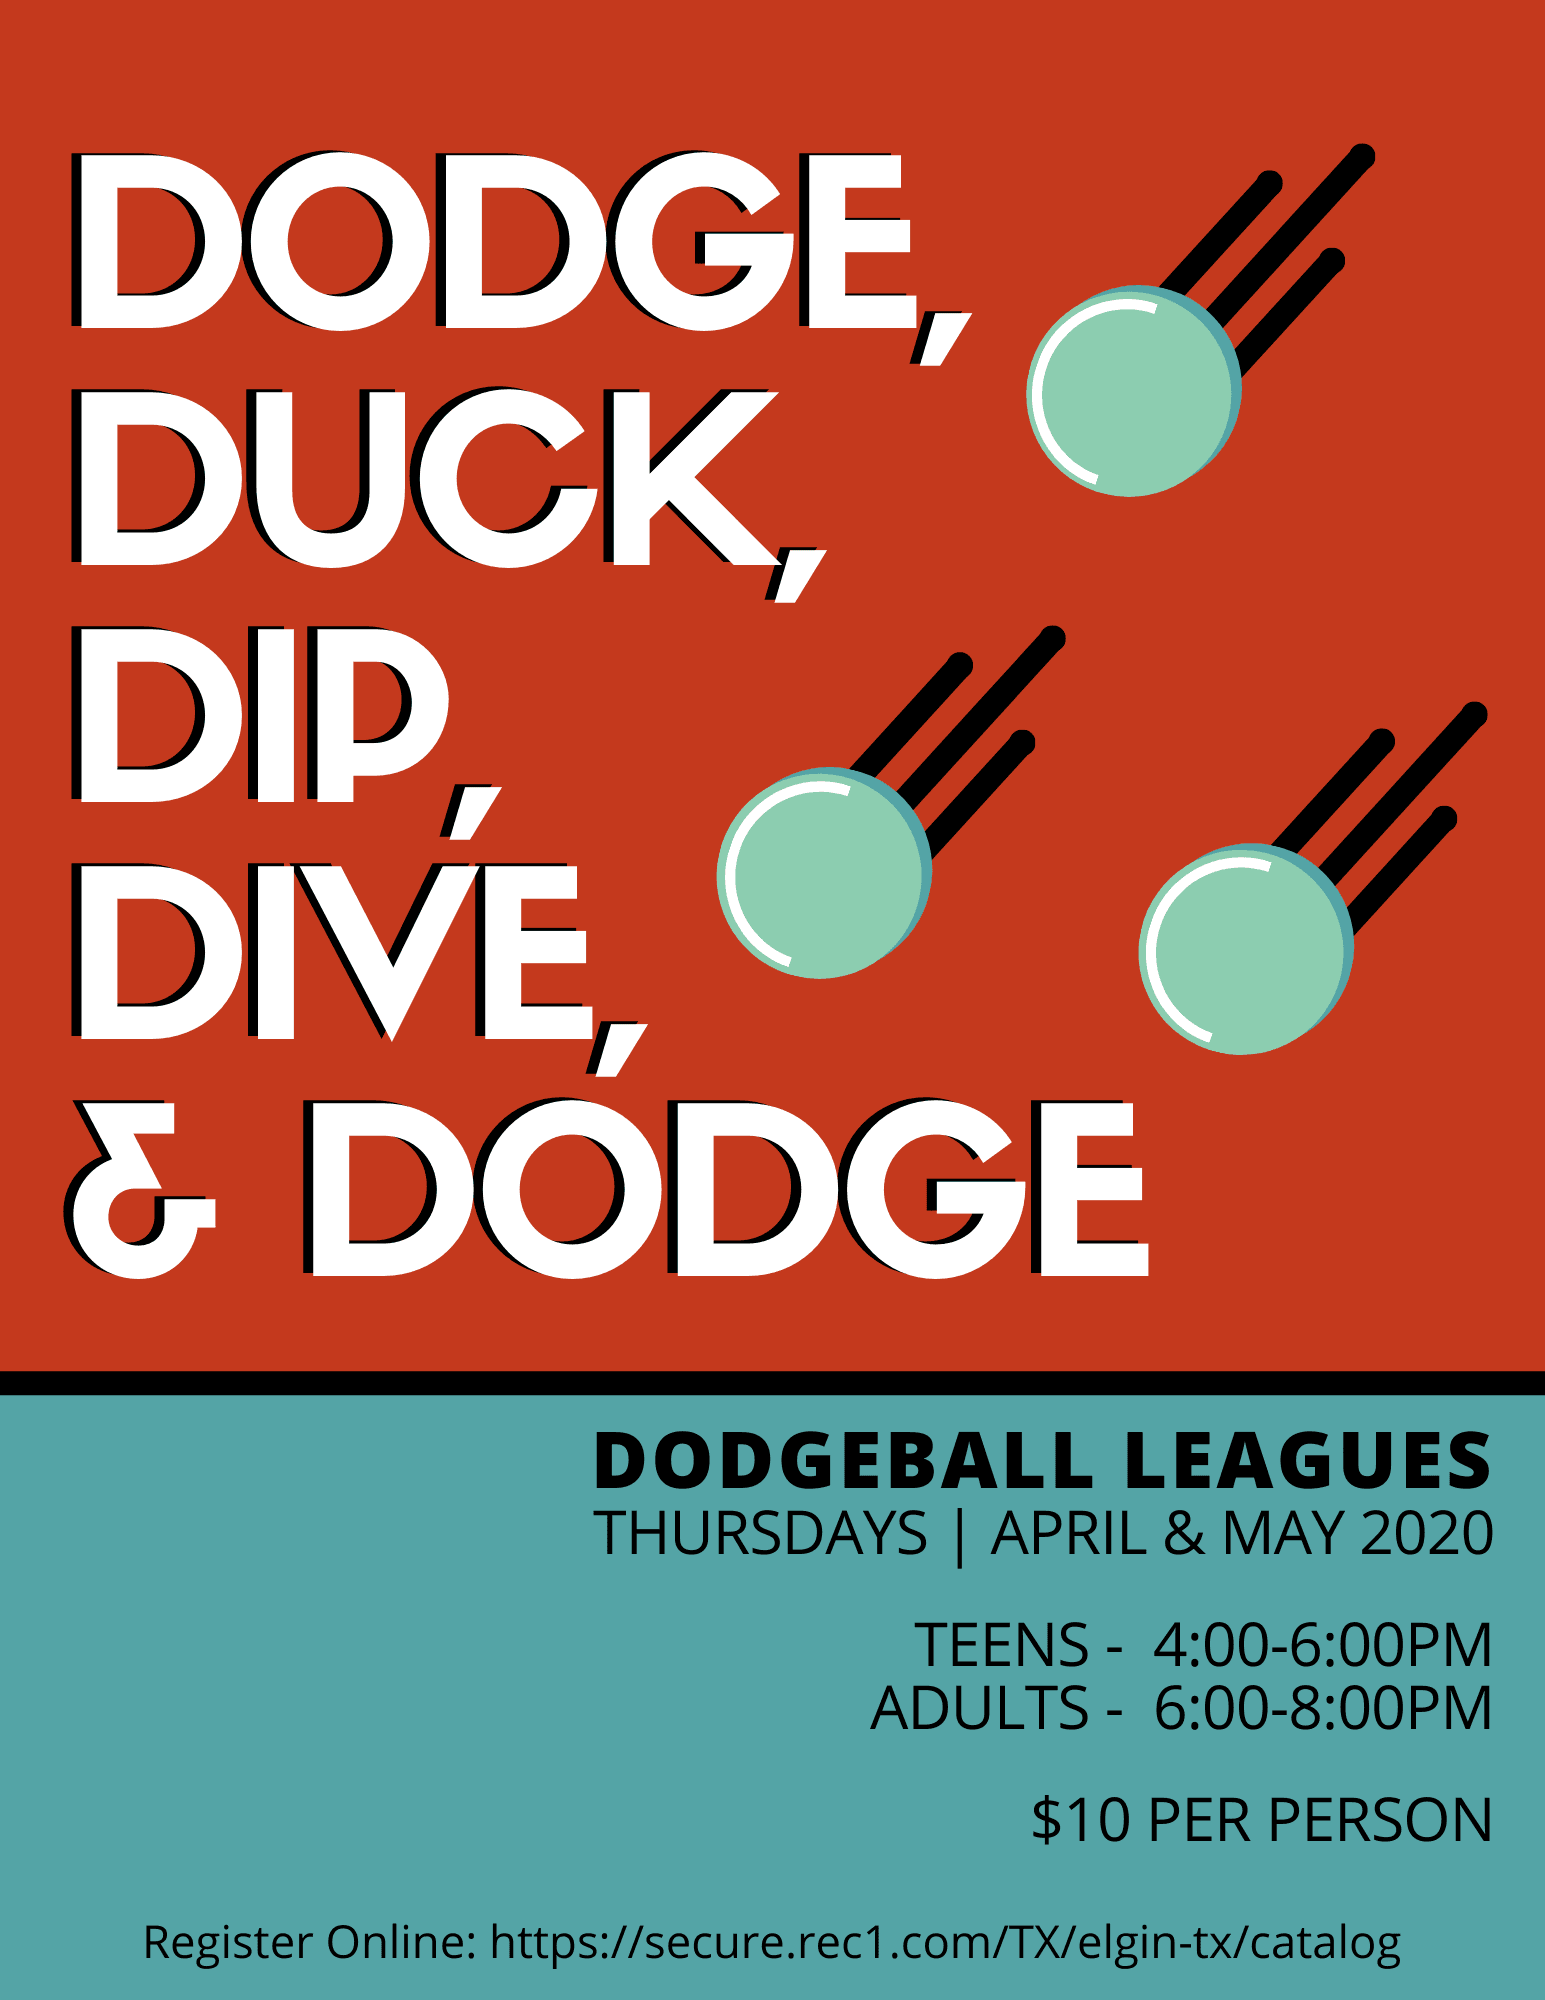 Adult and Teen Dodge Ball League Poster